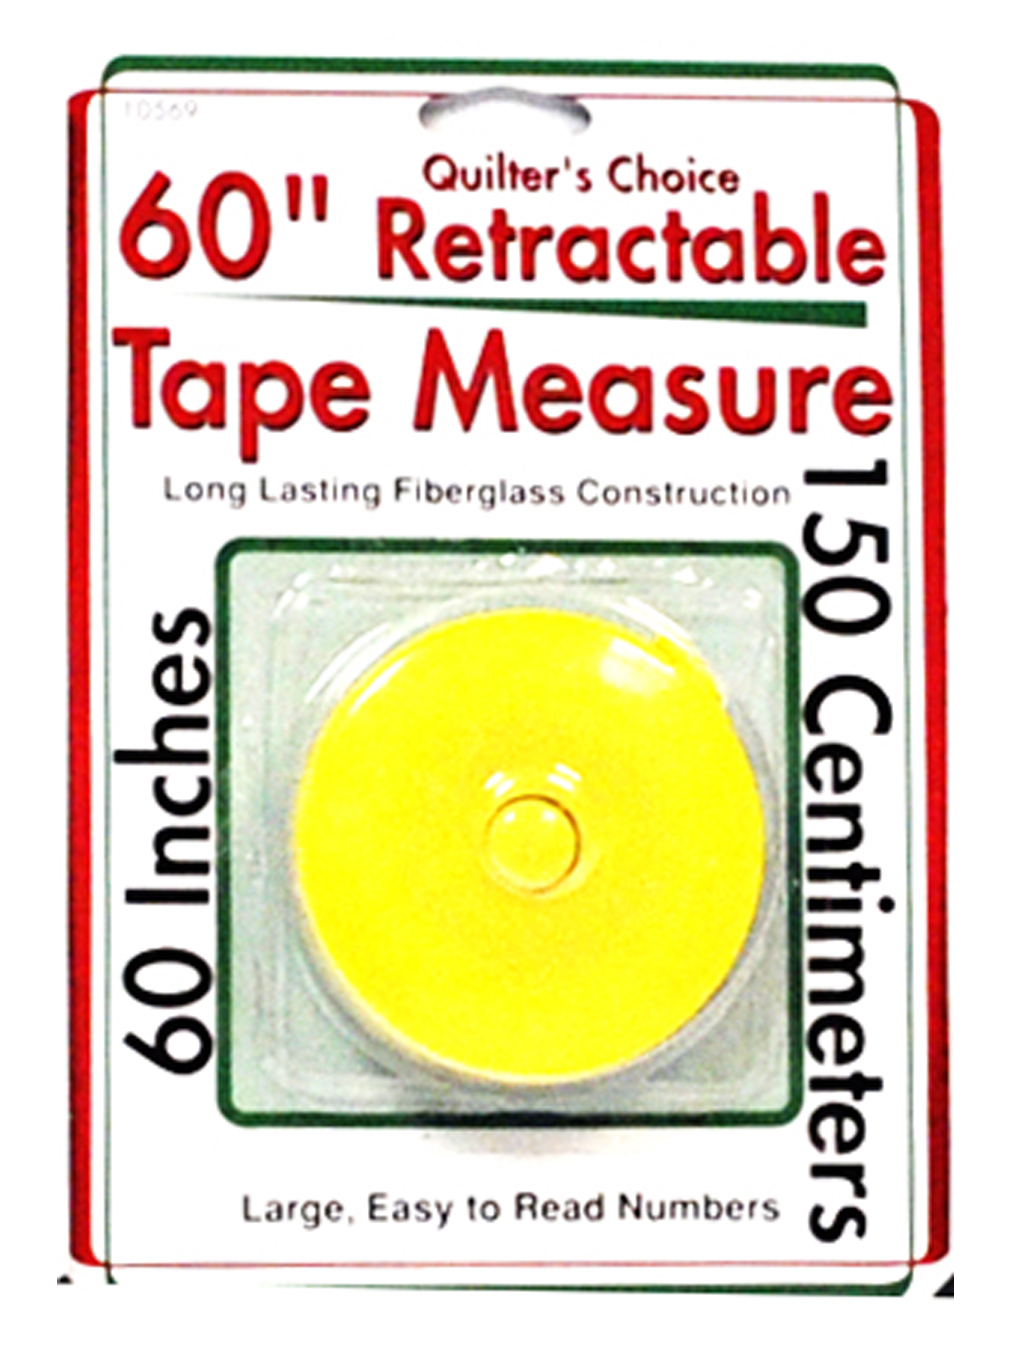 quilters choice 60 inch retractable tape measure yellow